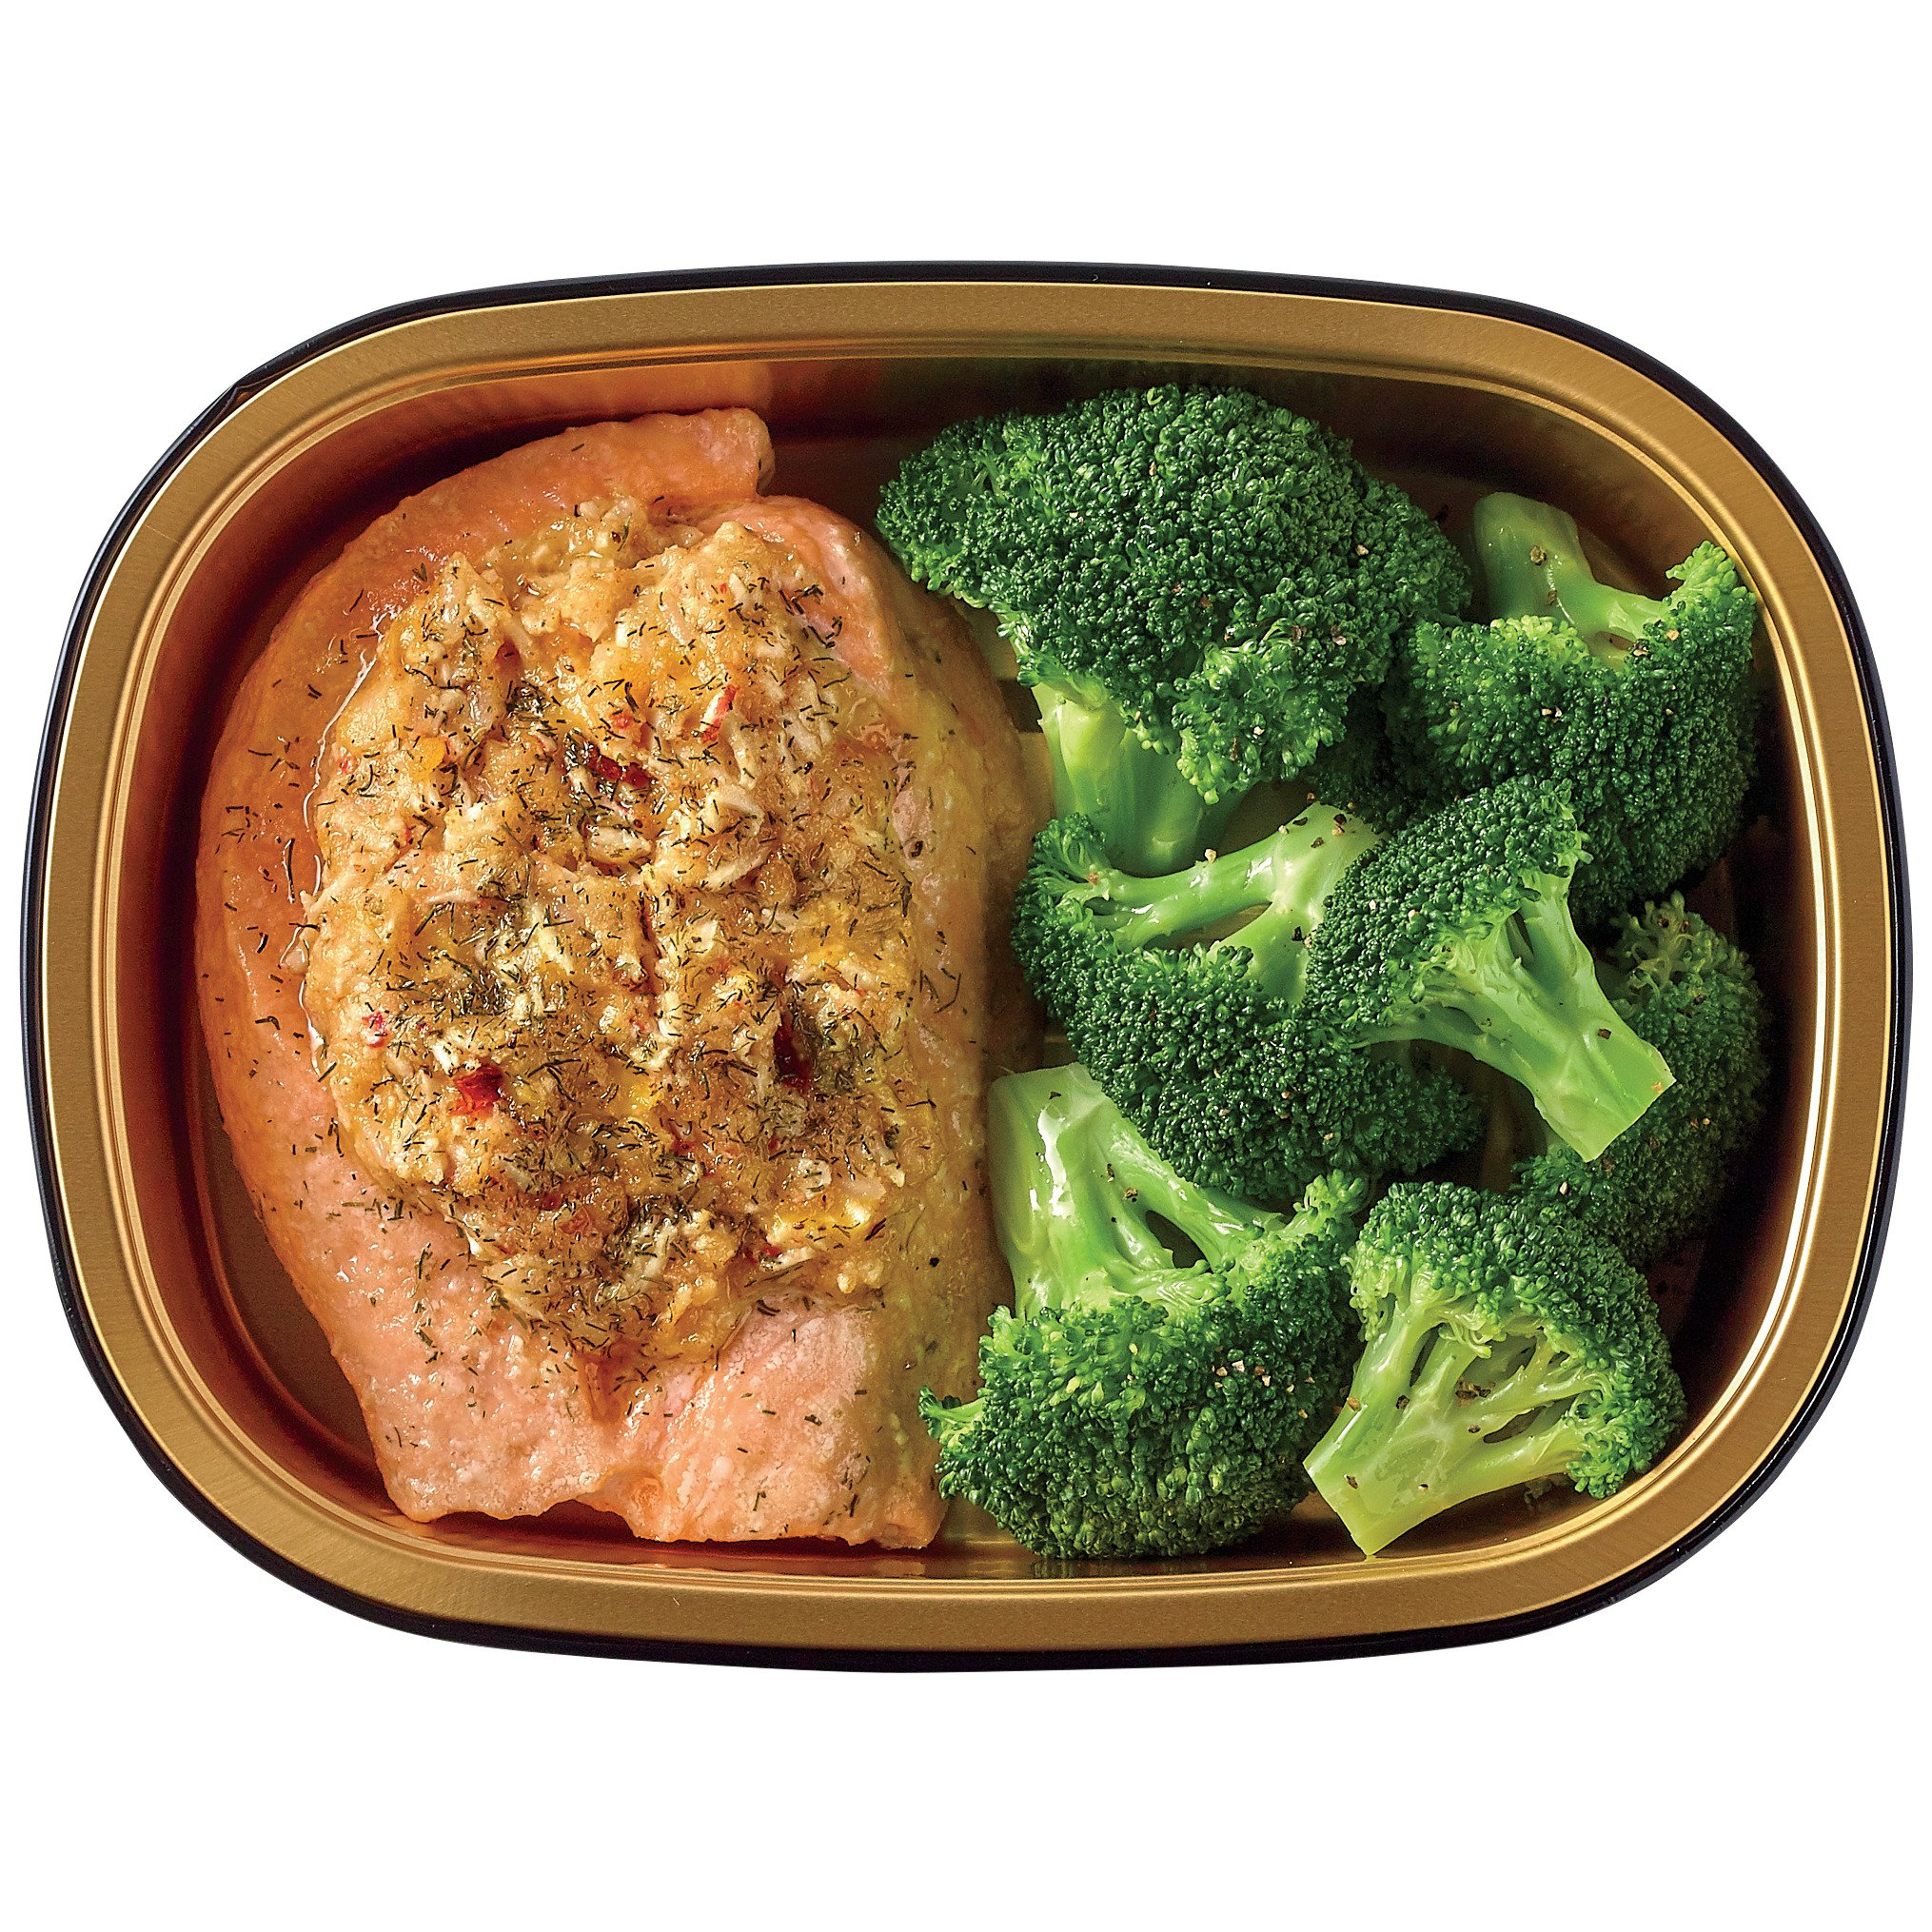 Meal simple prepared meals heb h e b meal simple stuffed atlantic salmon original with broccoli solutioingenieria Choice Image